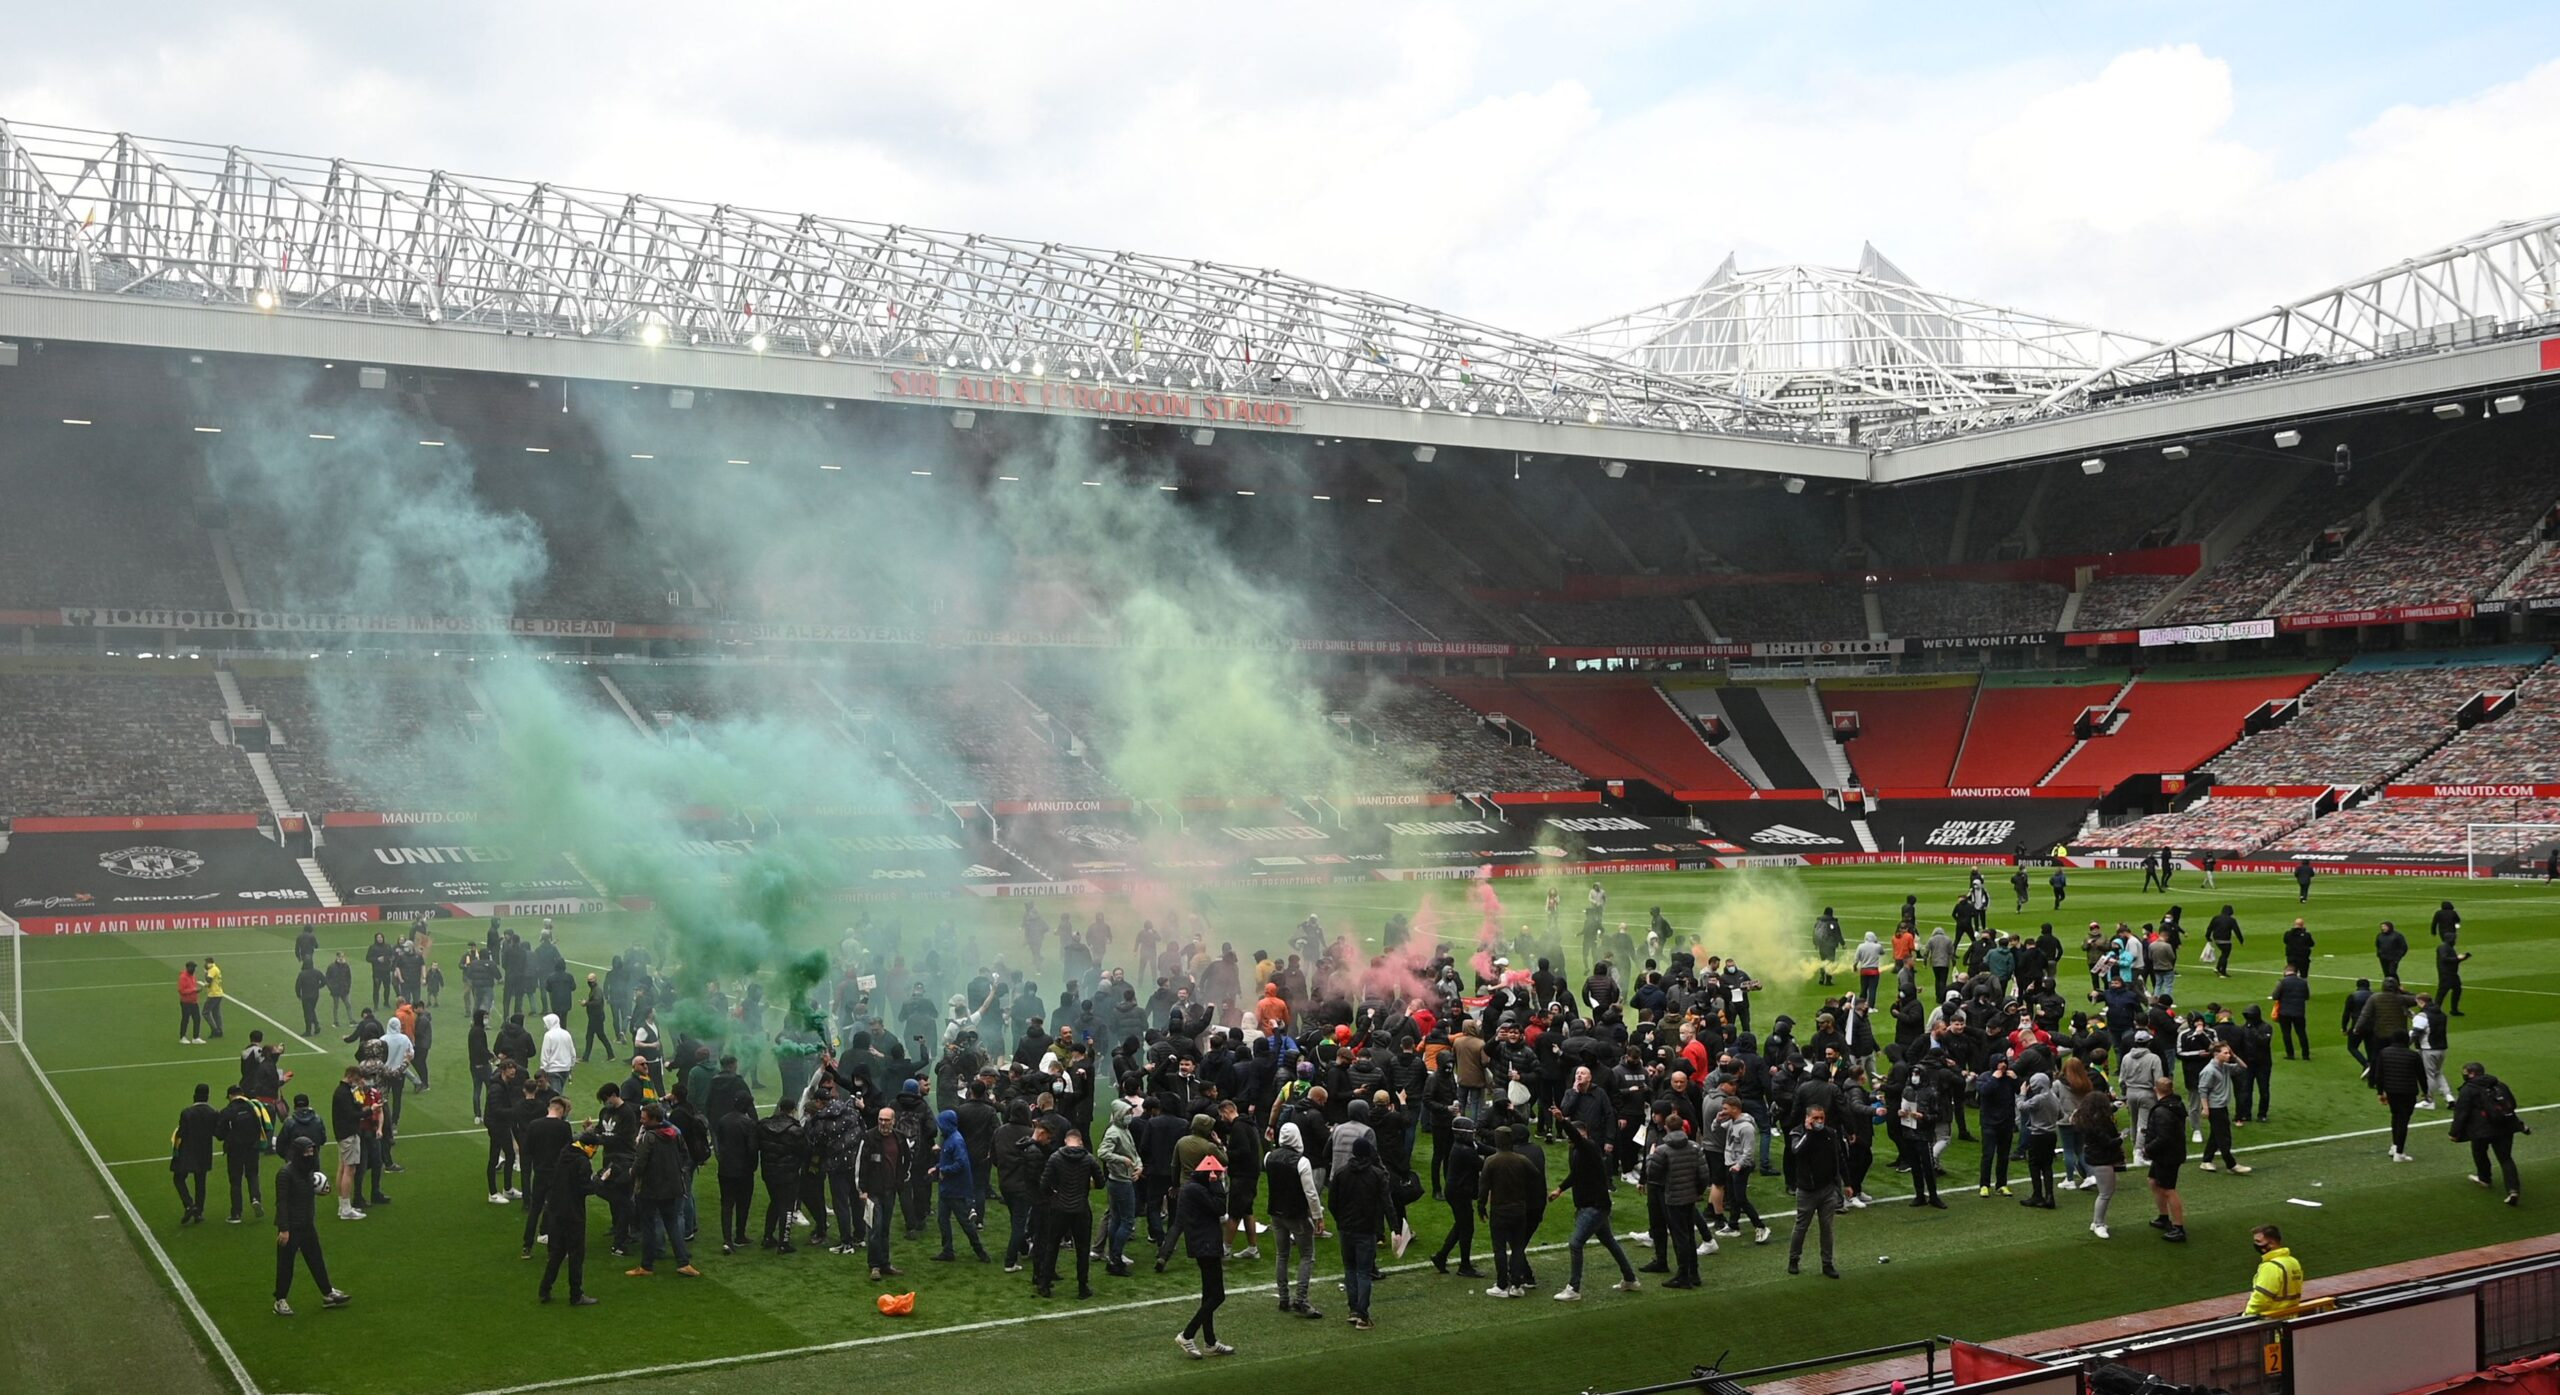 Supporters protest against Manchester United's owners, inside English Premier League club Manchester United's Old Trafford stadium in Manchester, north west England on May 2, 2021, ahead of their English Premier League fixture against Liverpool. - Manchester United were one of six Premier League teams to sign up to the breakaway European Super League tournament. But just 48 hours later the Super League collapsed as United and the rest of the English clubs pulled out. (Photo by Oli SCARFF / AFP)